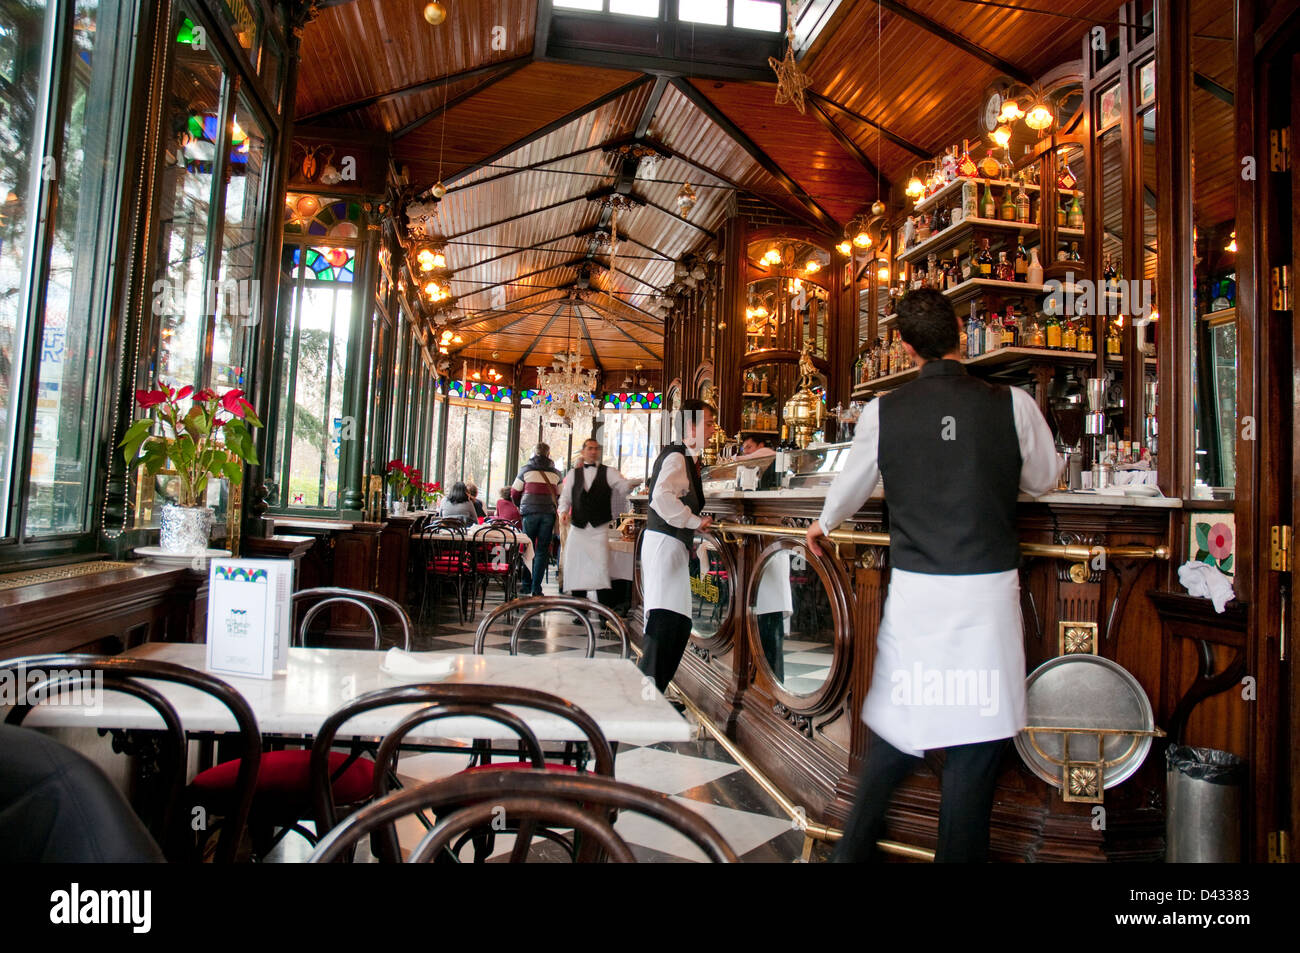 Waiters in a cafe. Madrid, Spain. - Stock Image